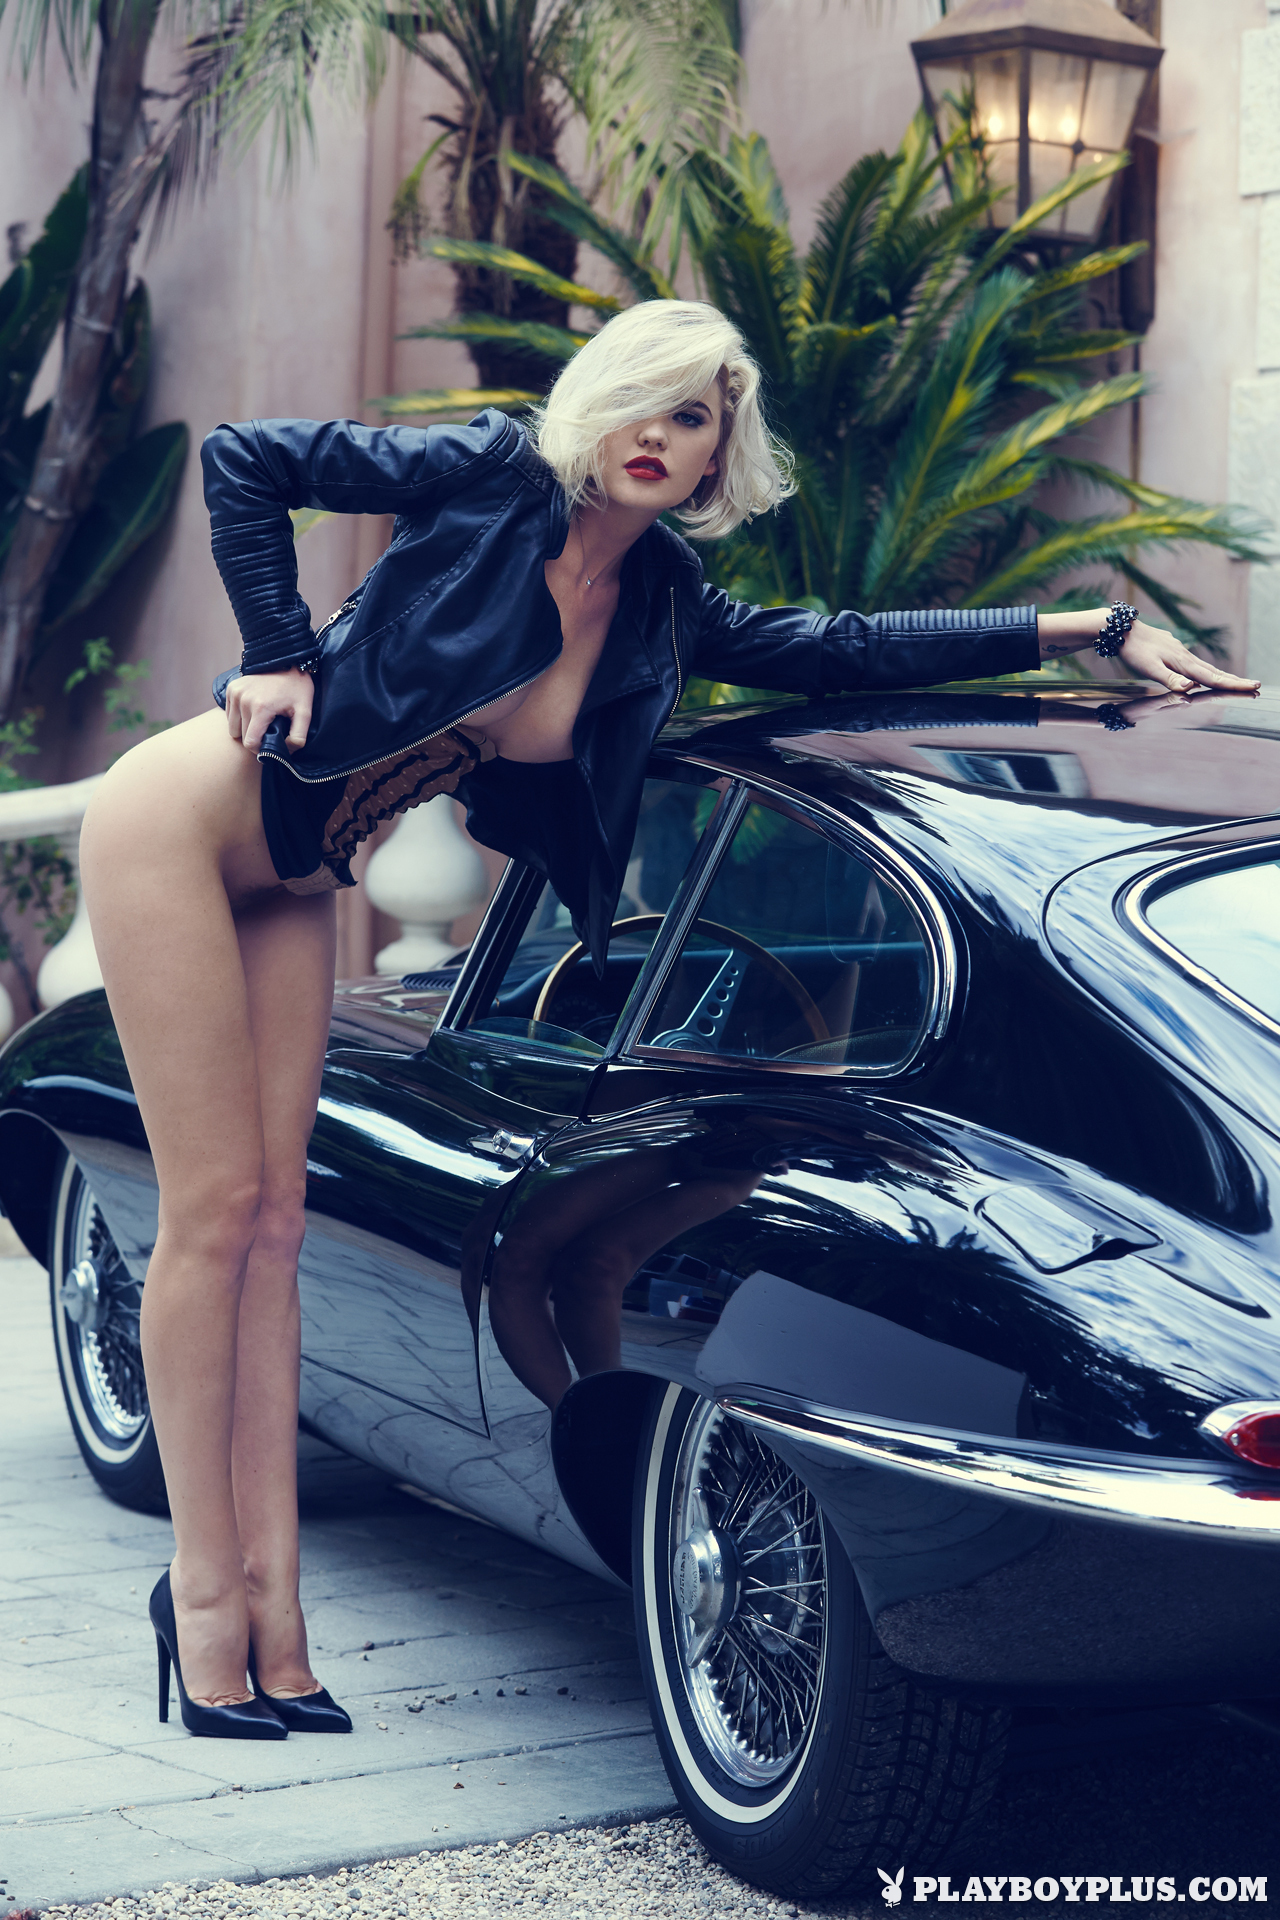 Can Naked Girls And Classic Cars